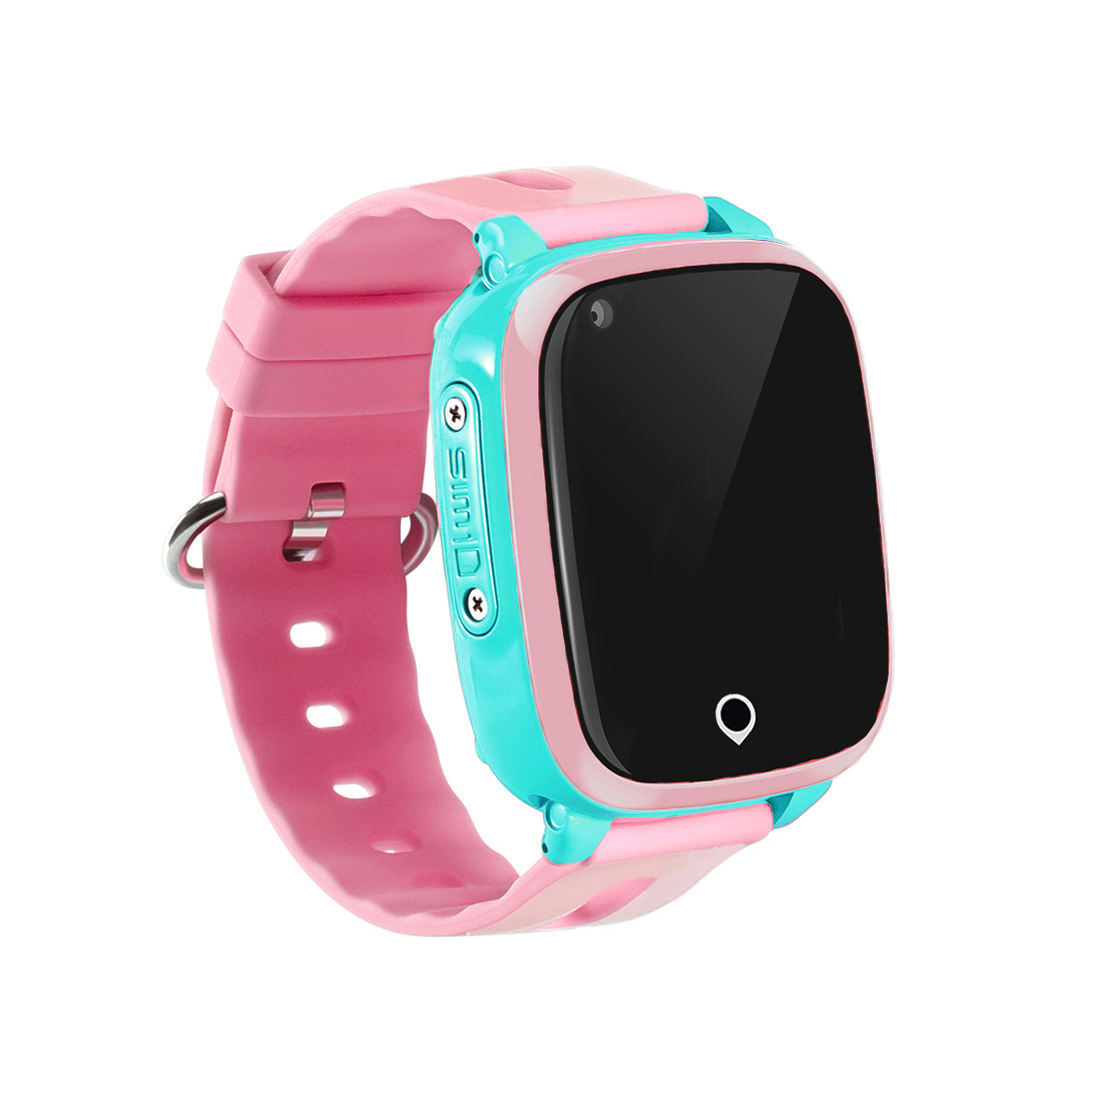 Mobile smartwatch kids 4G lte sos wrist gift watches video call digital kids gps tracker tracking device